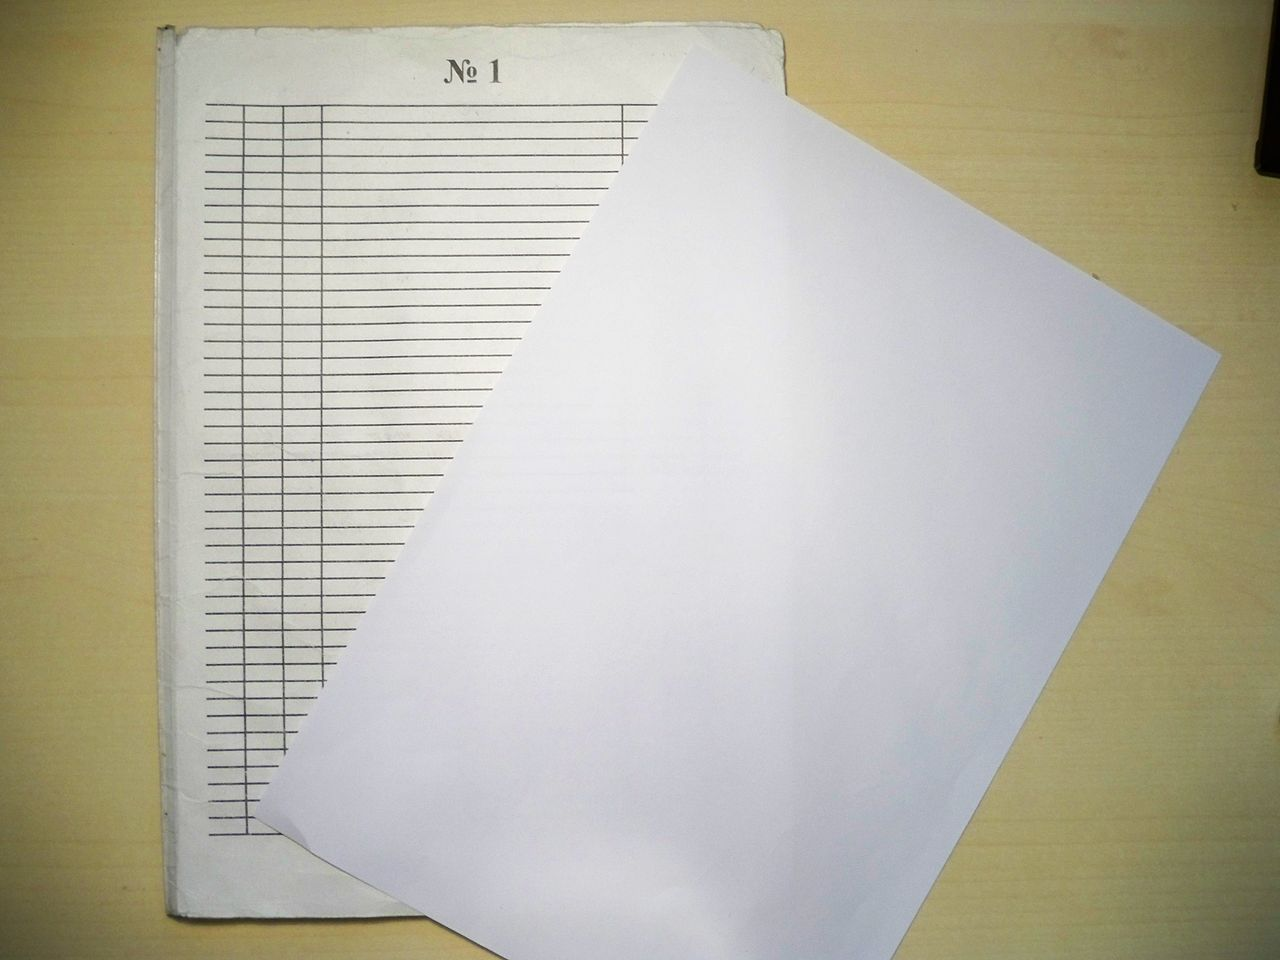 FileRuled paperJPG Wikimedia Commons – Print College Ruled Paper